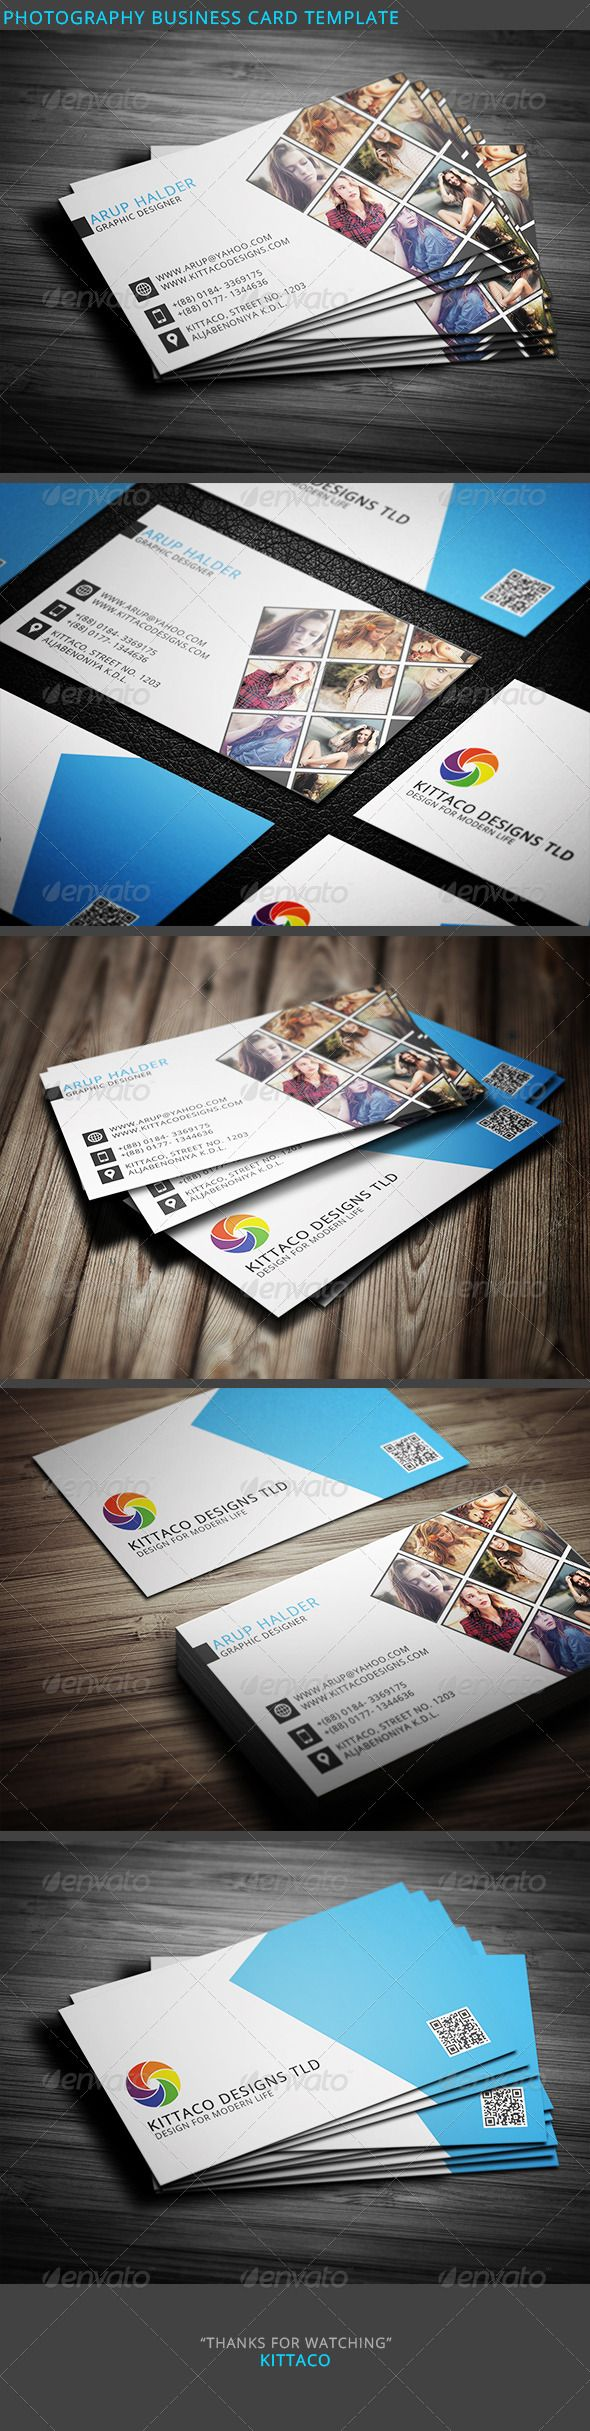 Photography Business Card Template #card #vcard Download: http://graphicriver.net/item/photography-business-card-template-2/8245218?ref=ksioks